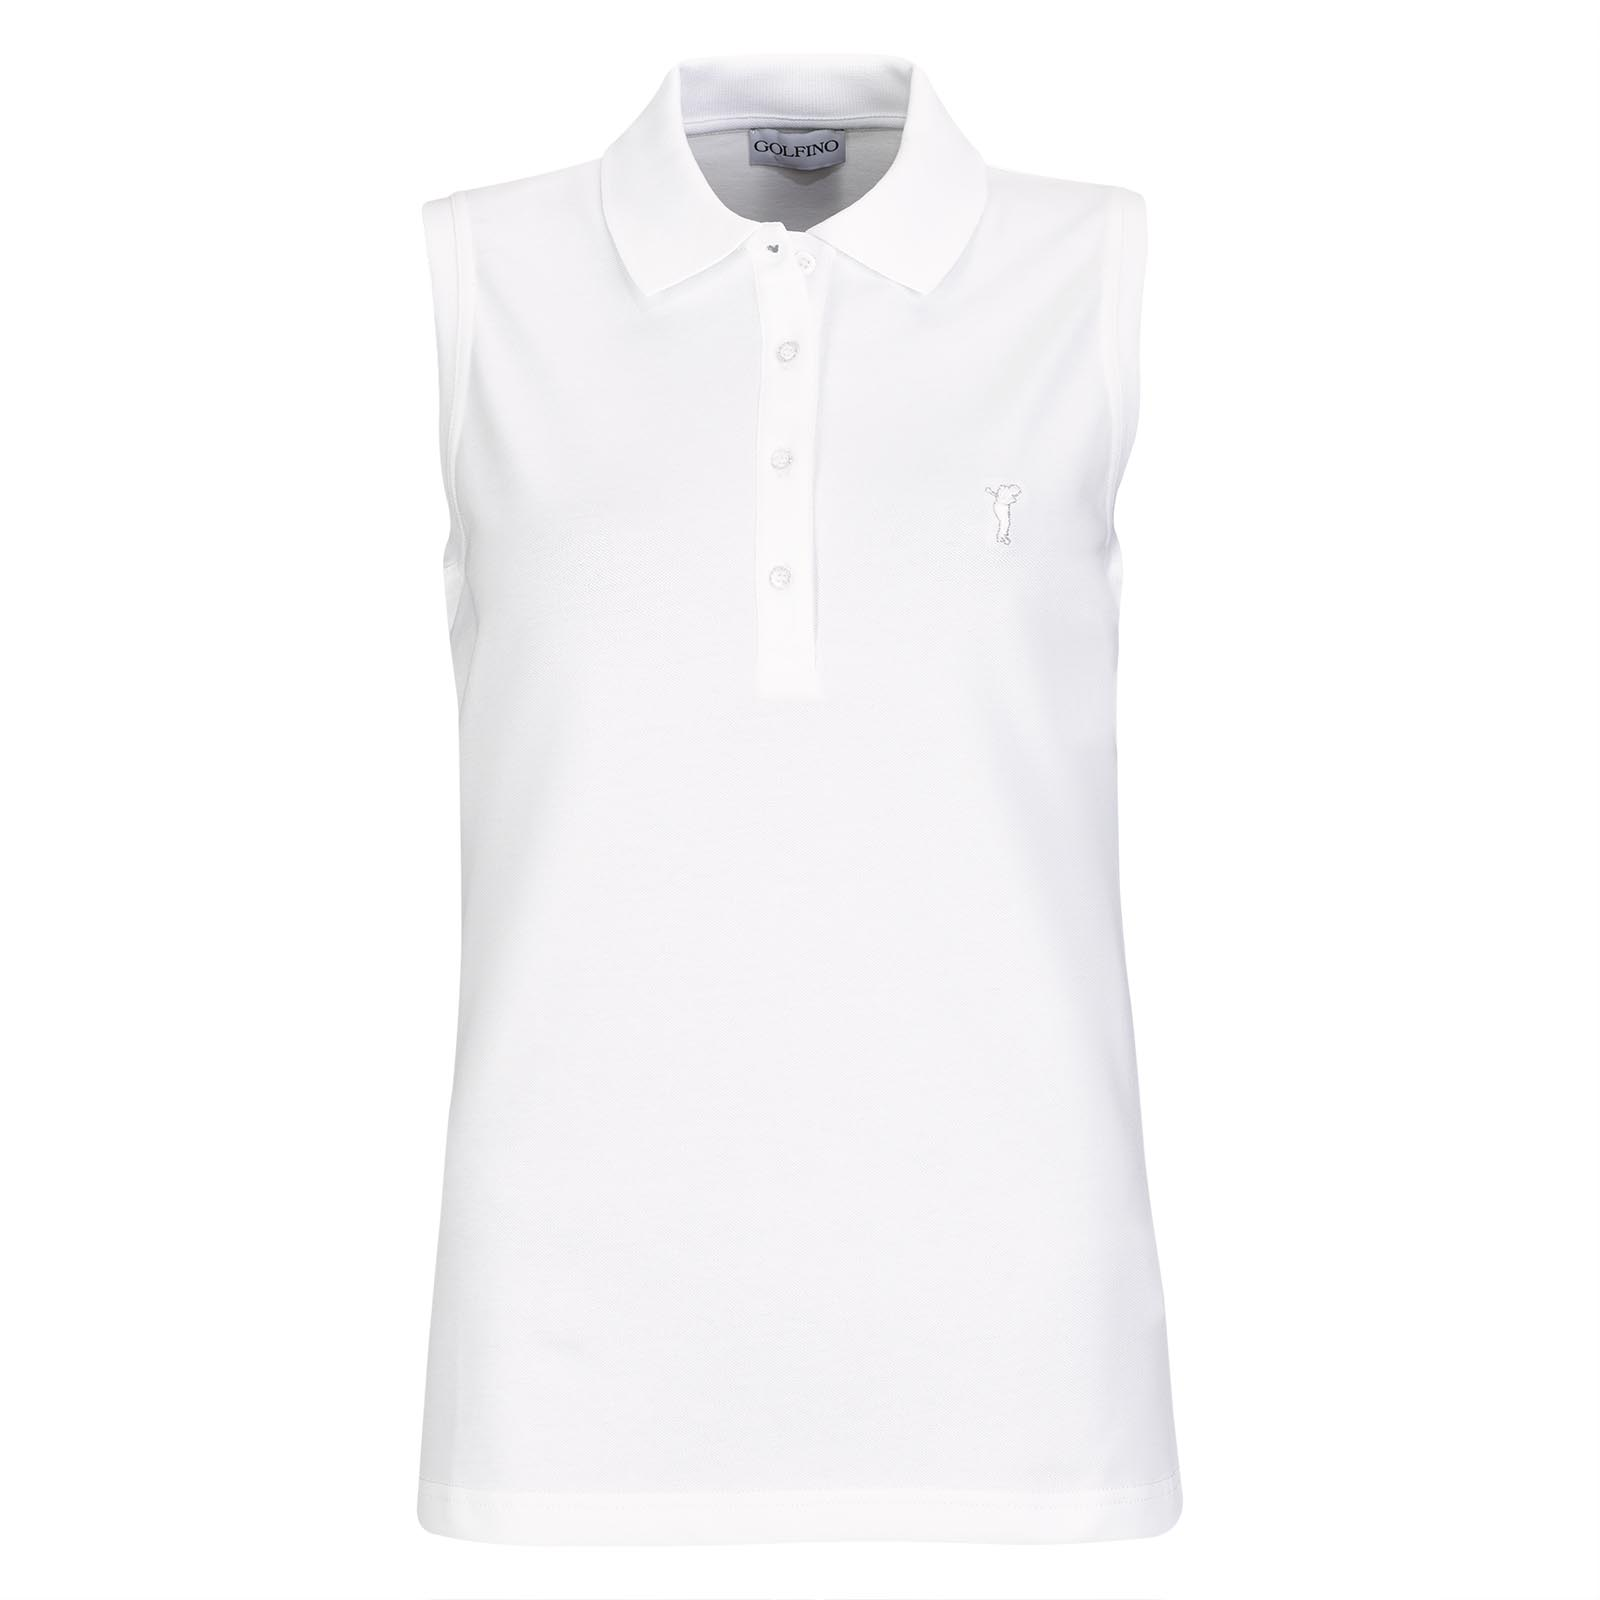 Ärmelloses Basic Cotton Blend Damen Golfpolo mit Stretchfunktion